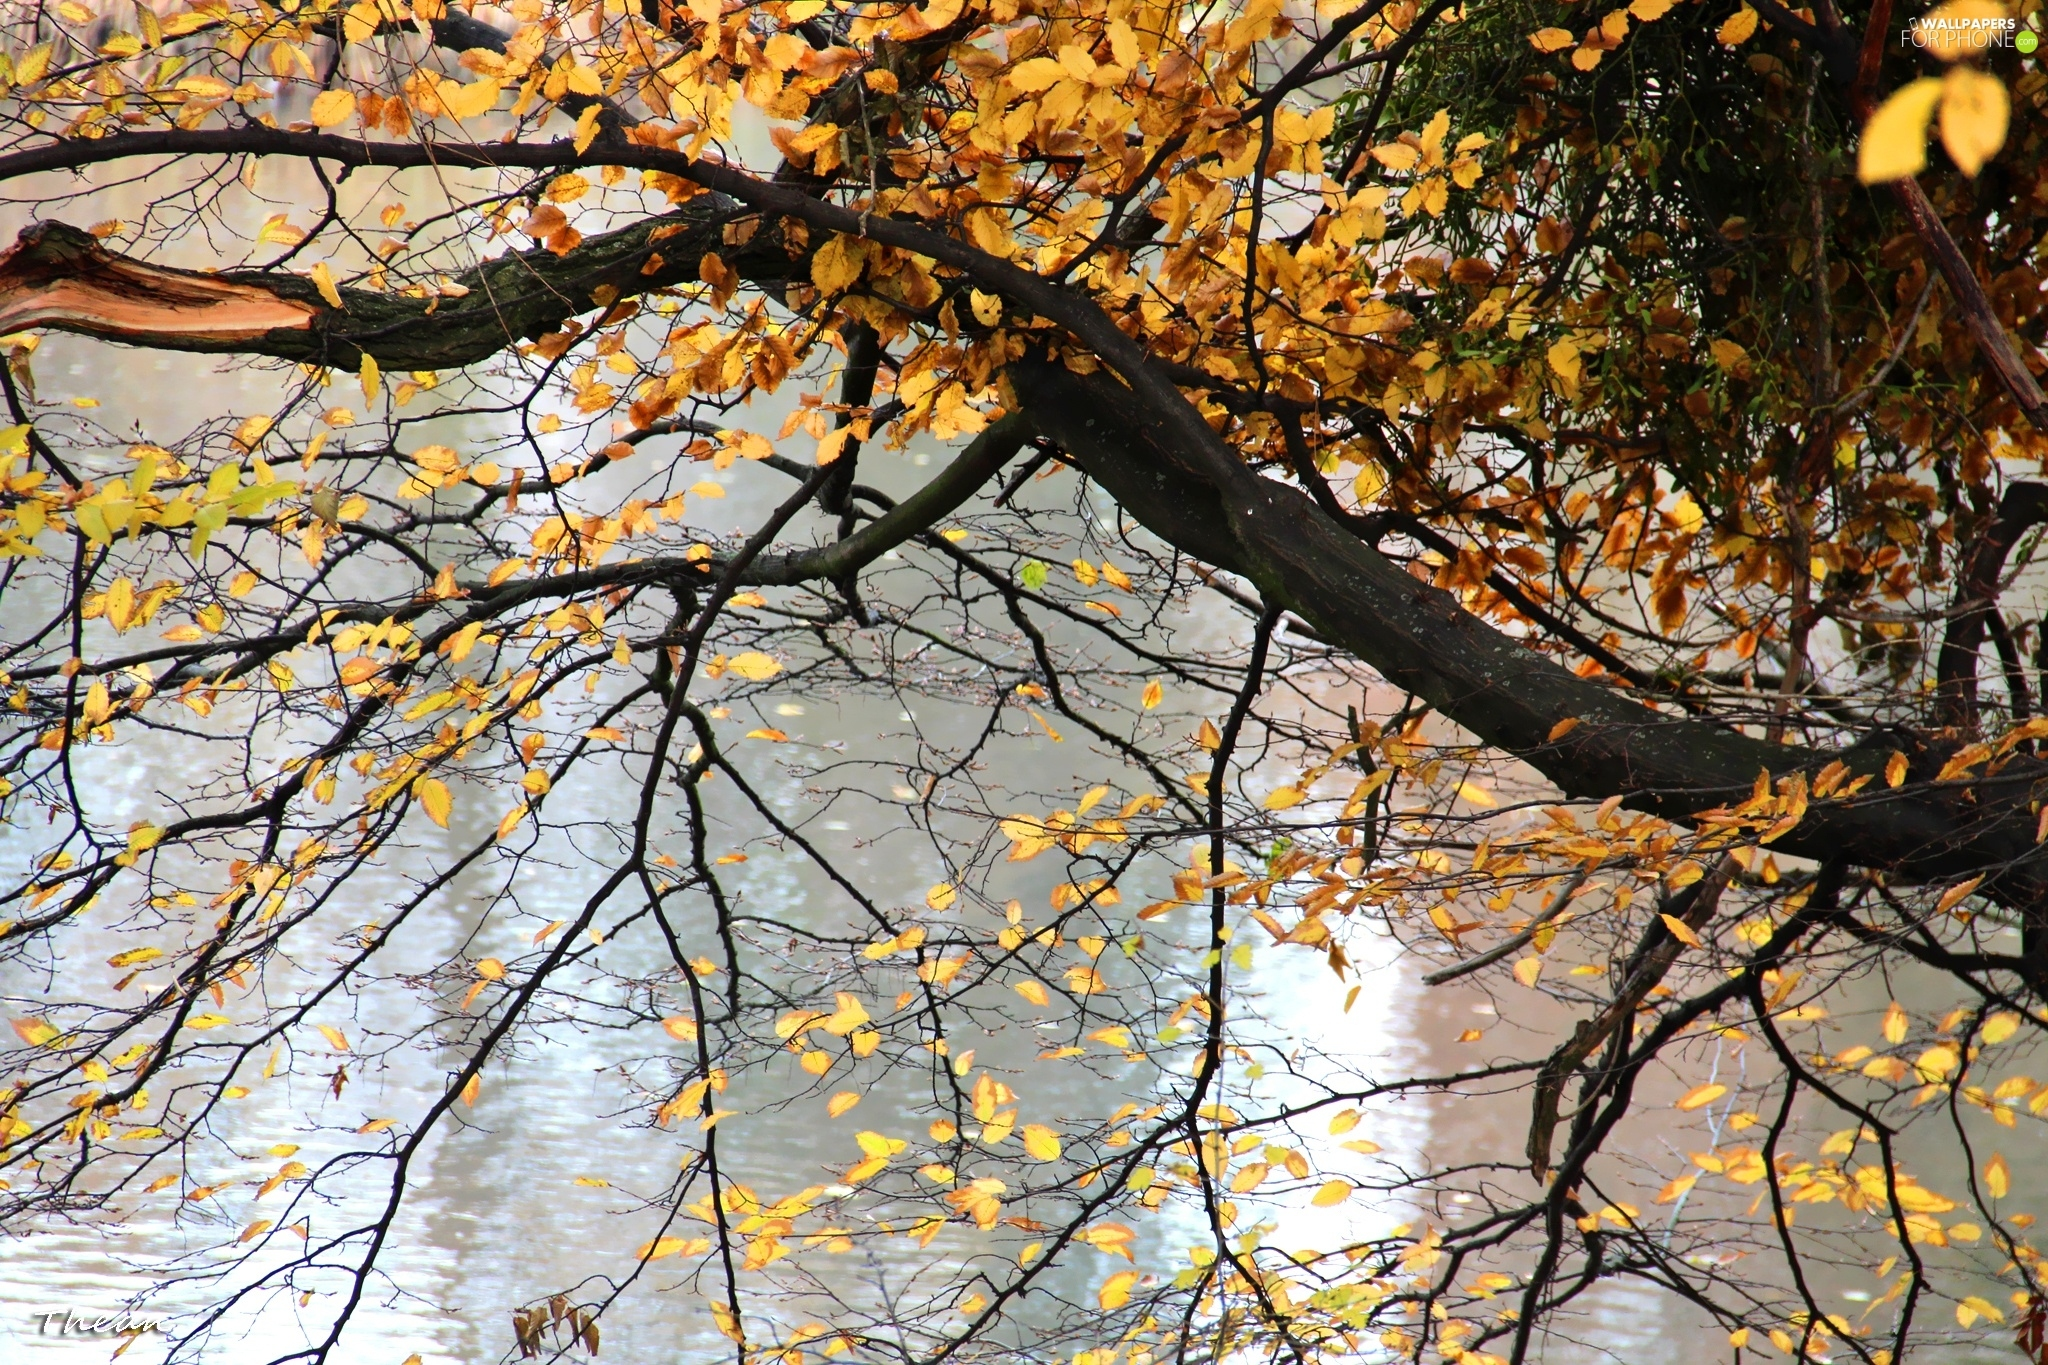 water, trees, Yellow, Leaf, autumn, by